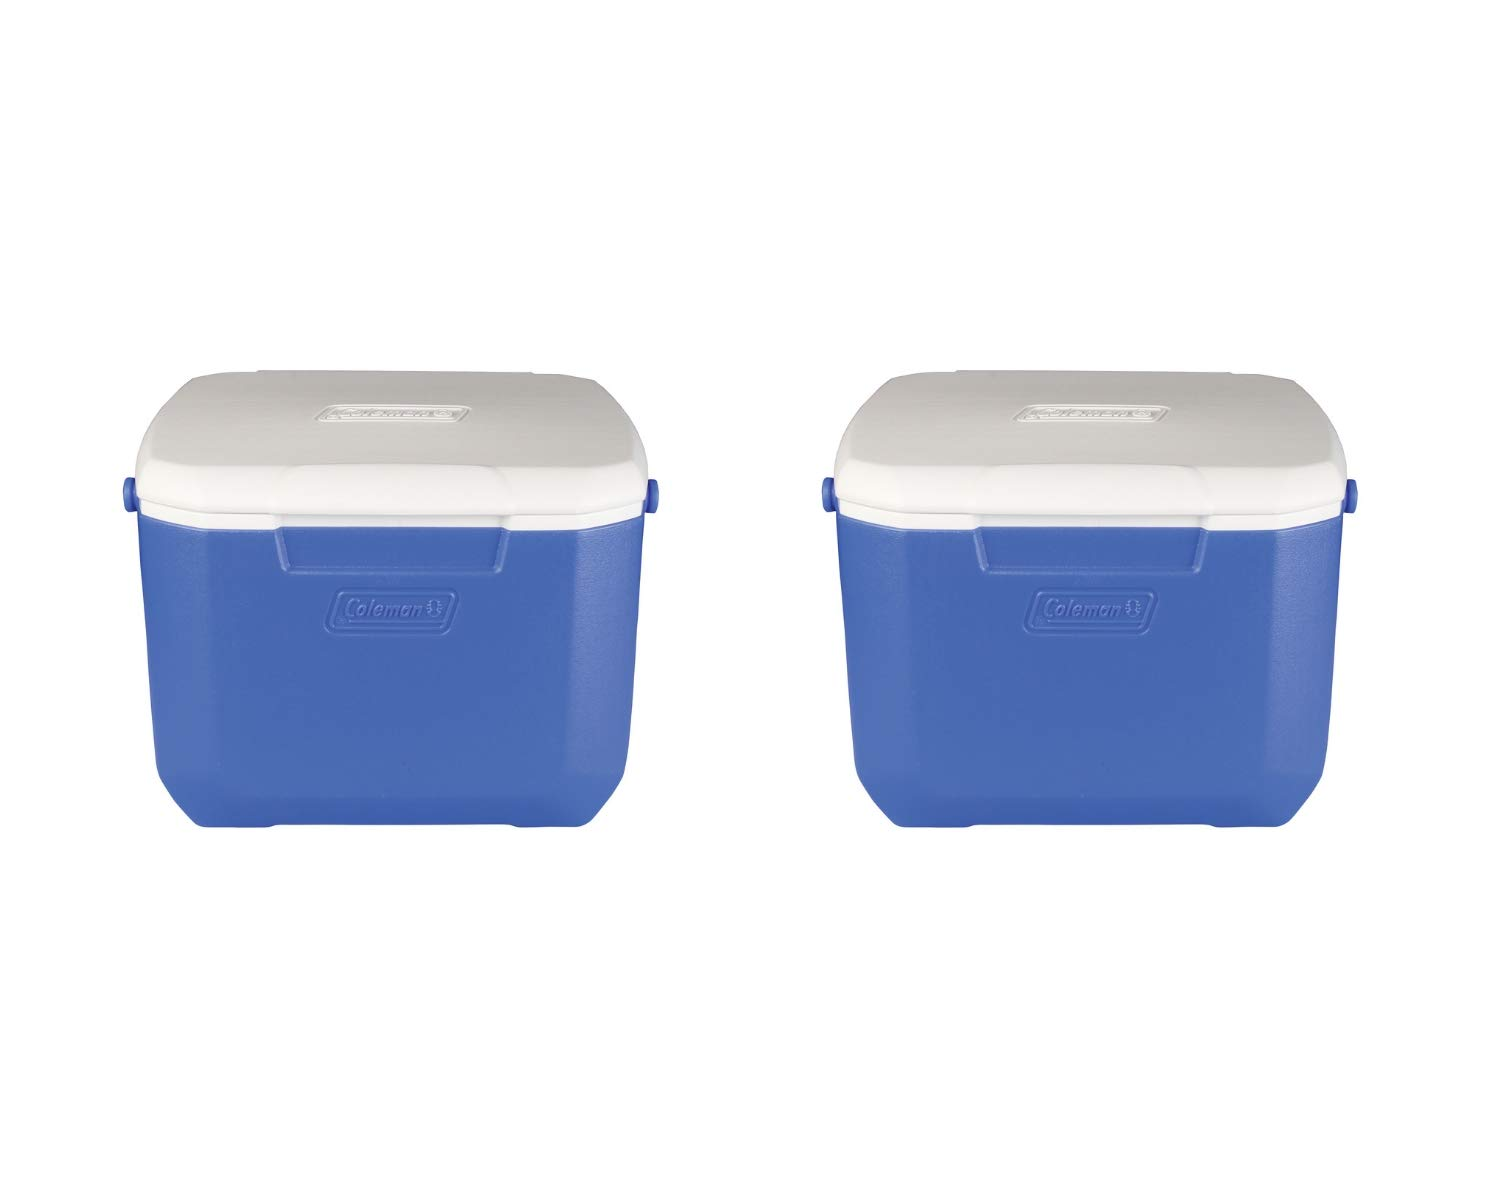 Coleman 3000001832 Cooler 16Qt Blue 00 5877 (2 Set, 16-Quart, Cooler, Blue)